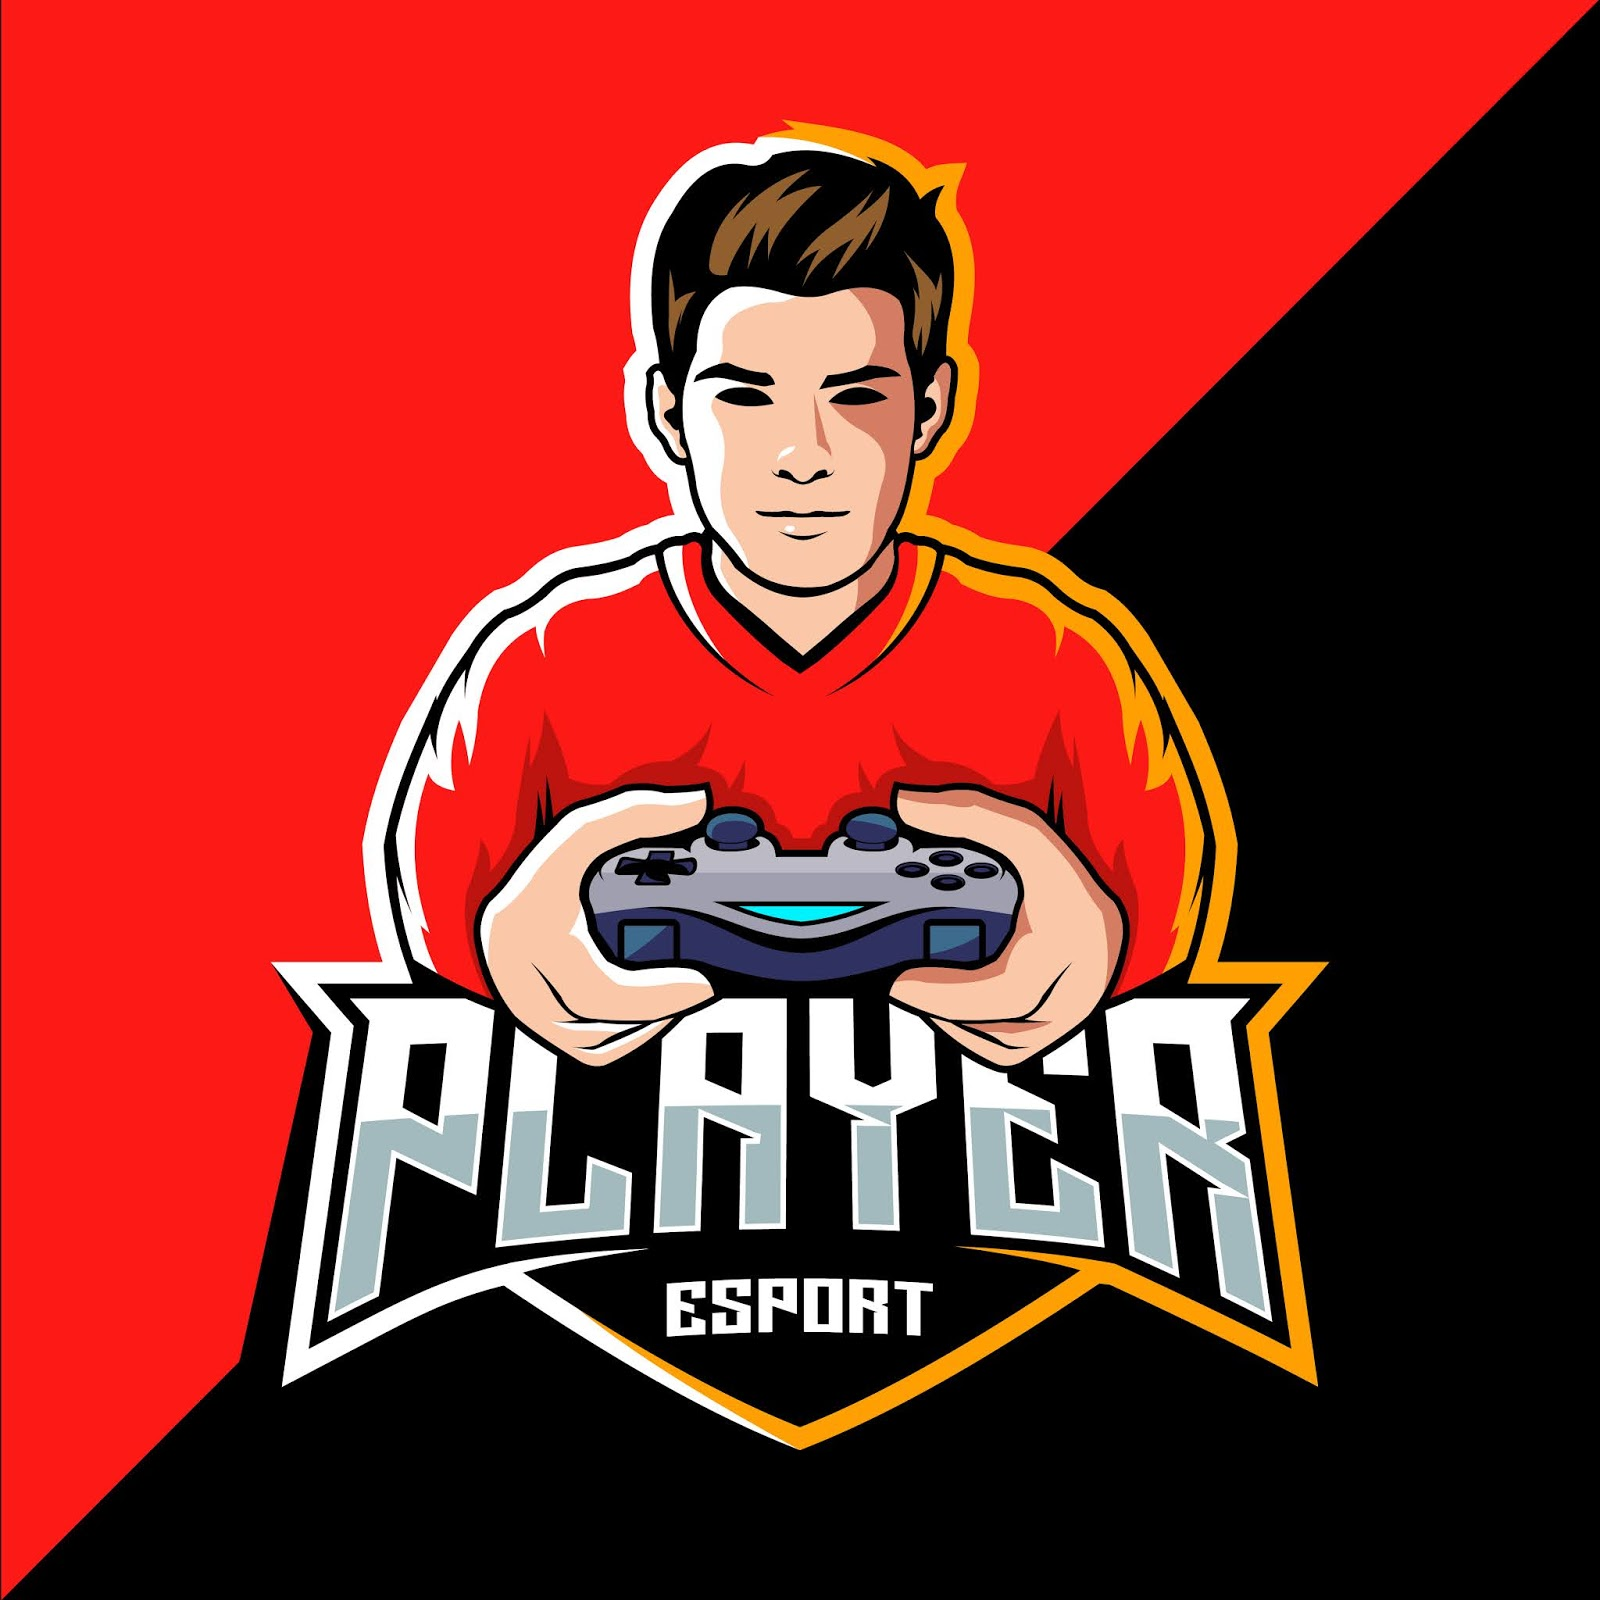 Pro Player Esport Game Logo Free Download Vector CDR, AI, EPS and PNG Formats